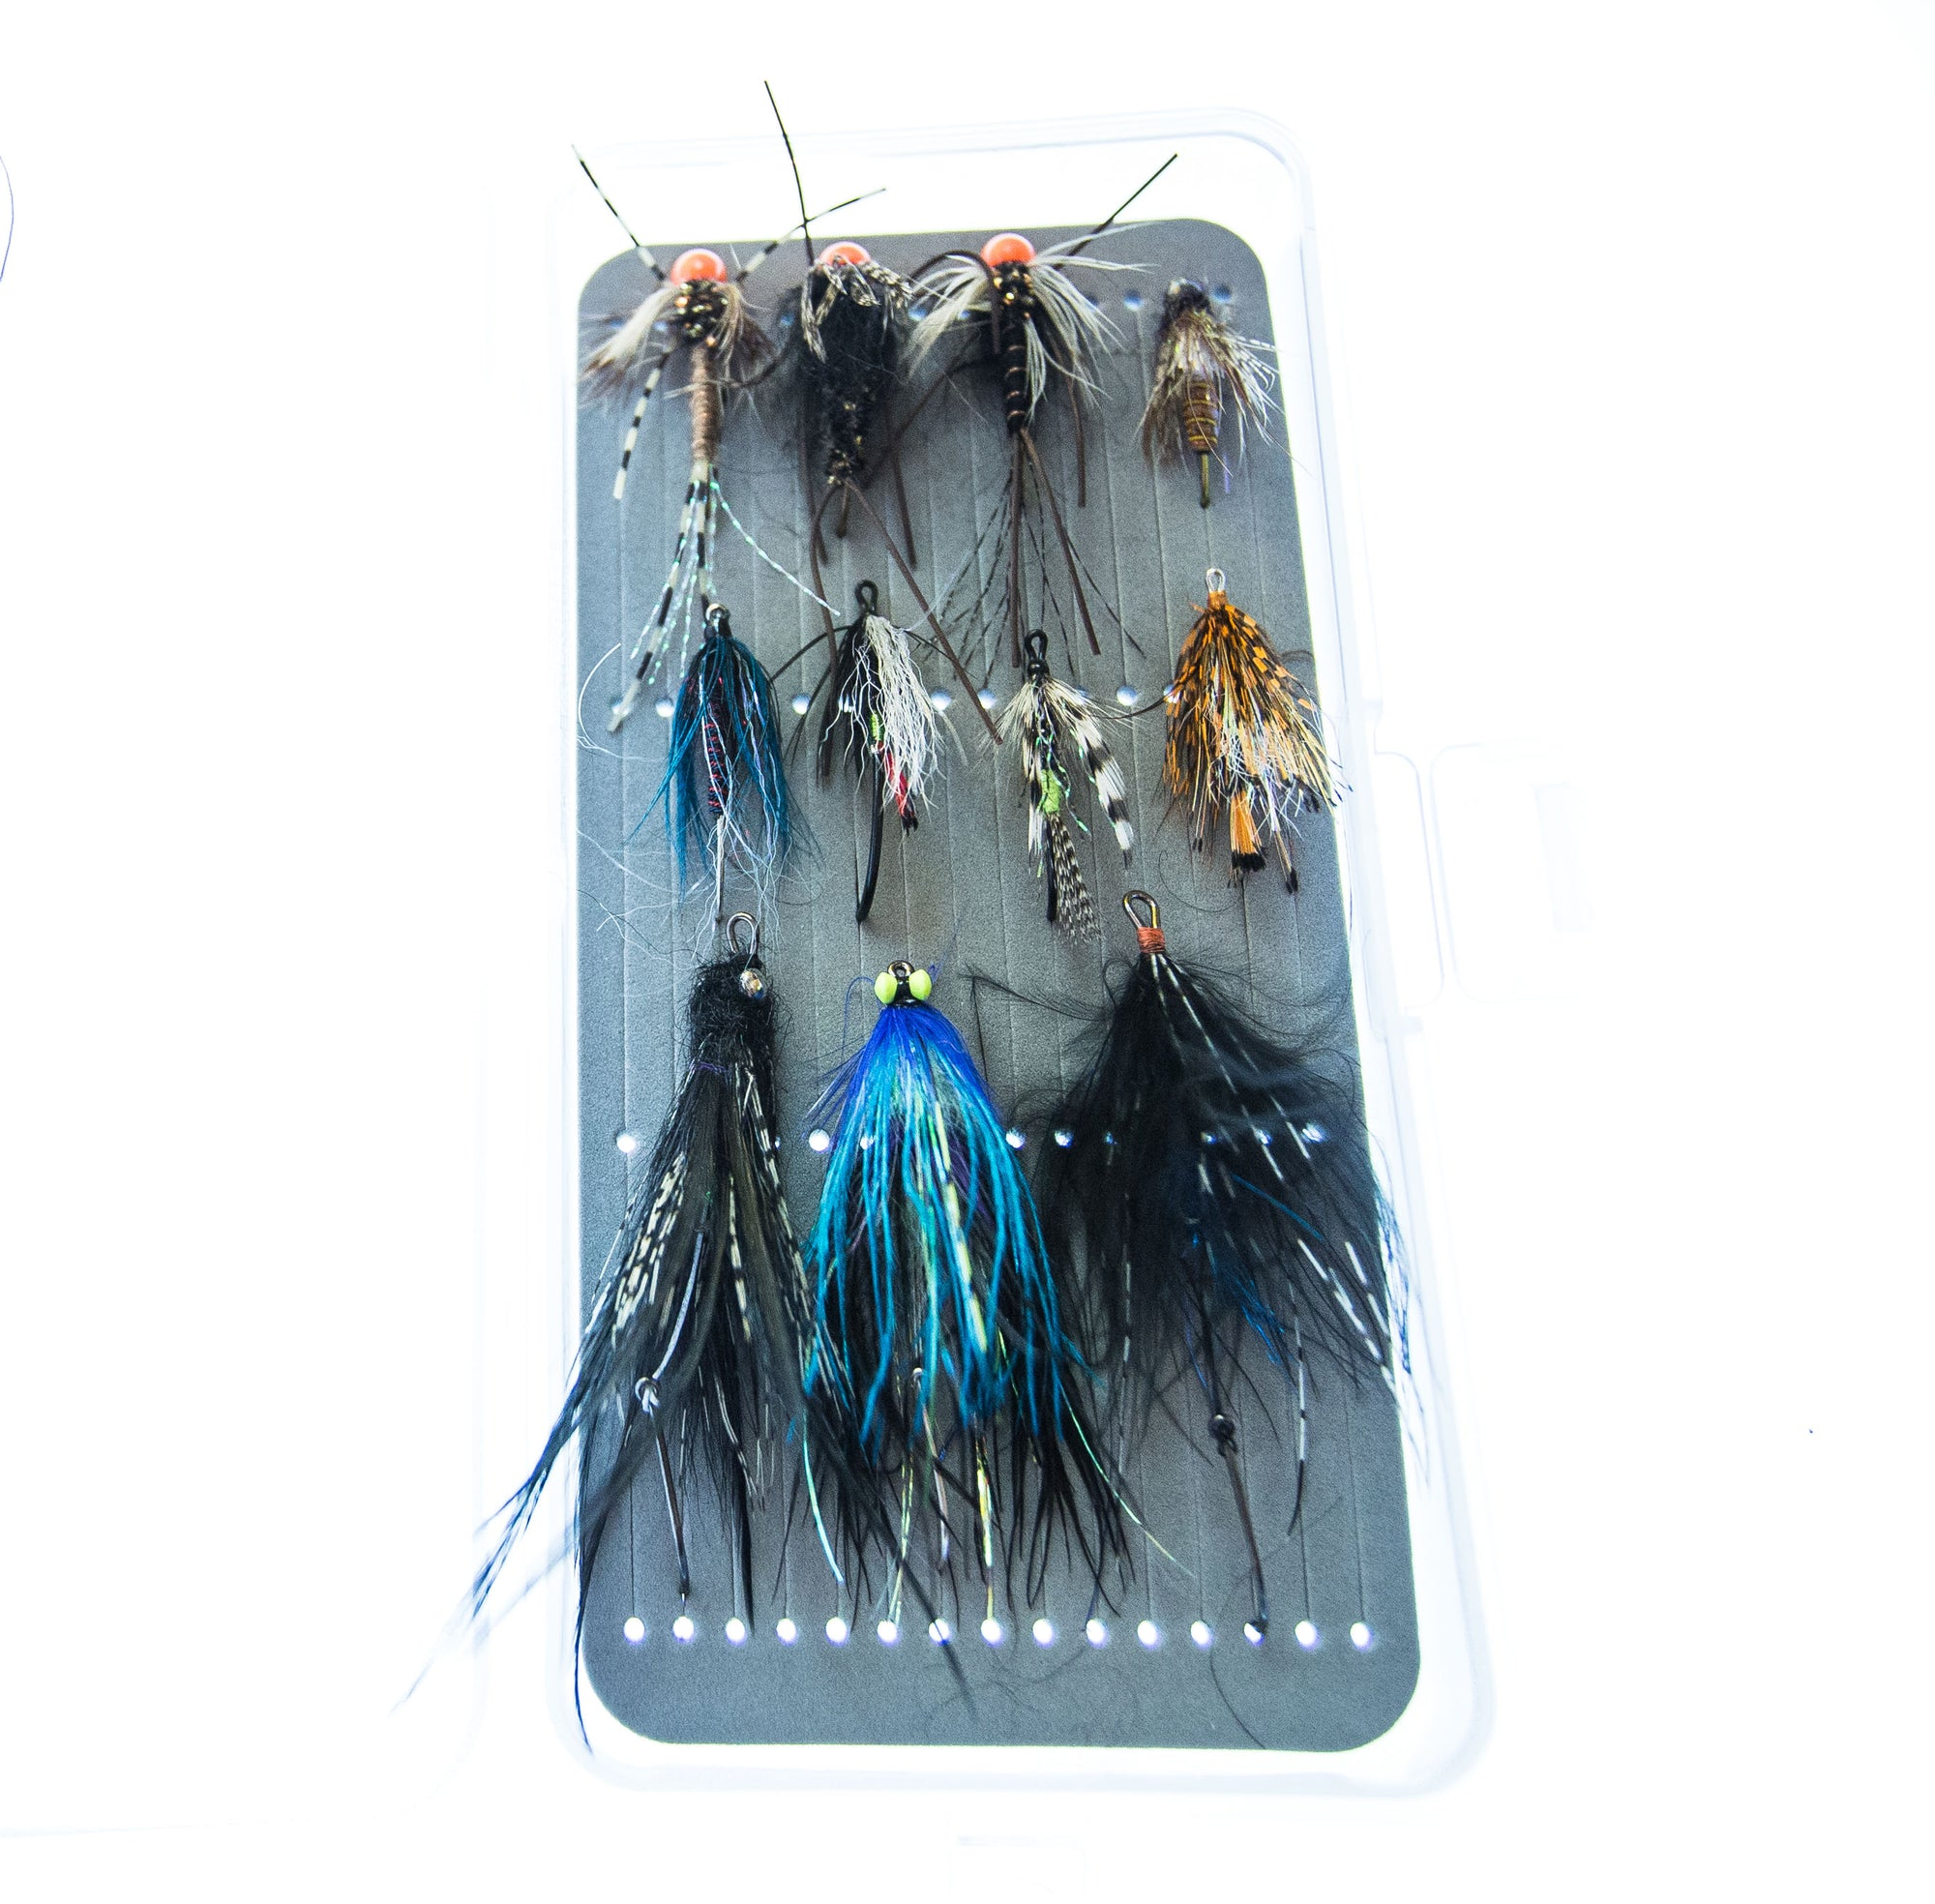 Basic Steelhead Fly Selection